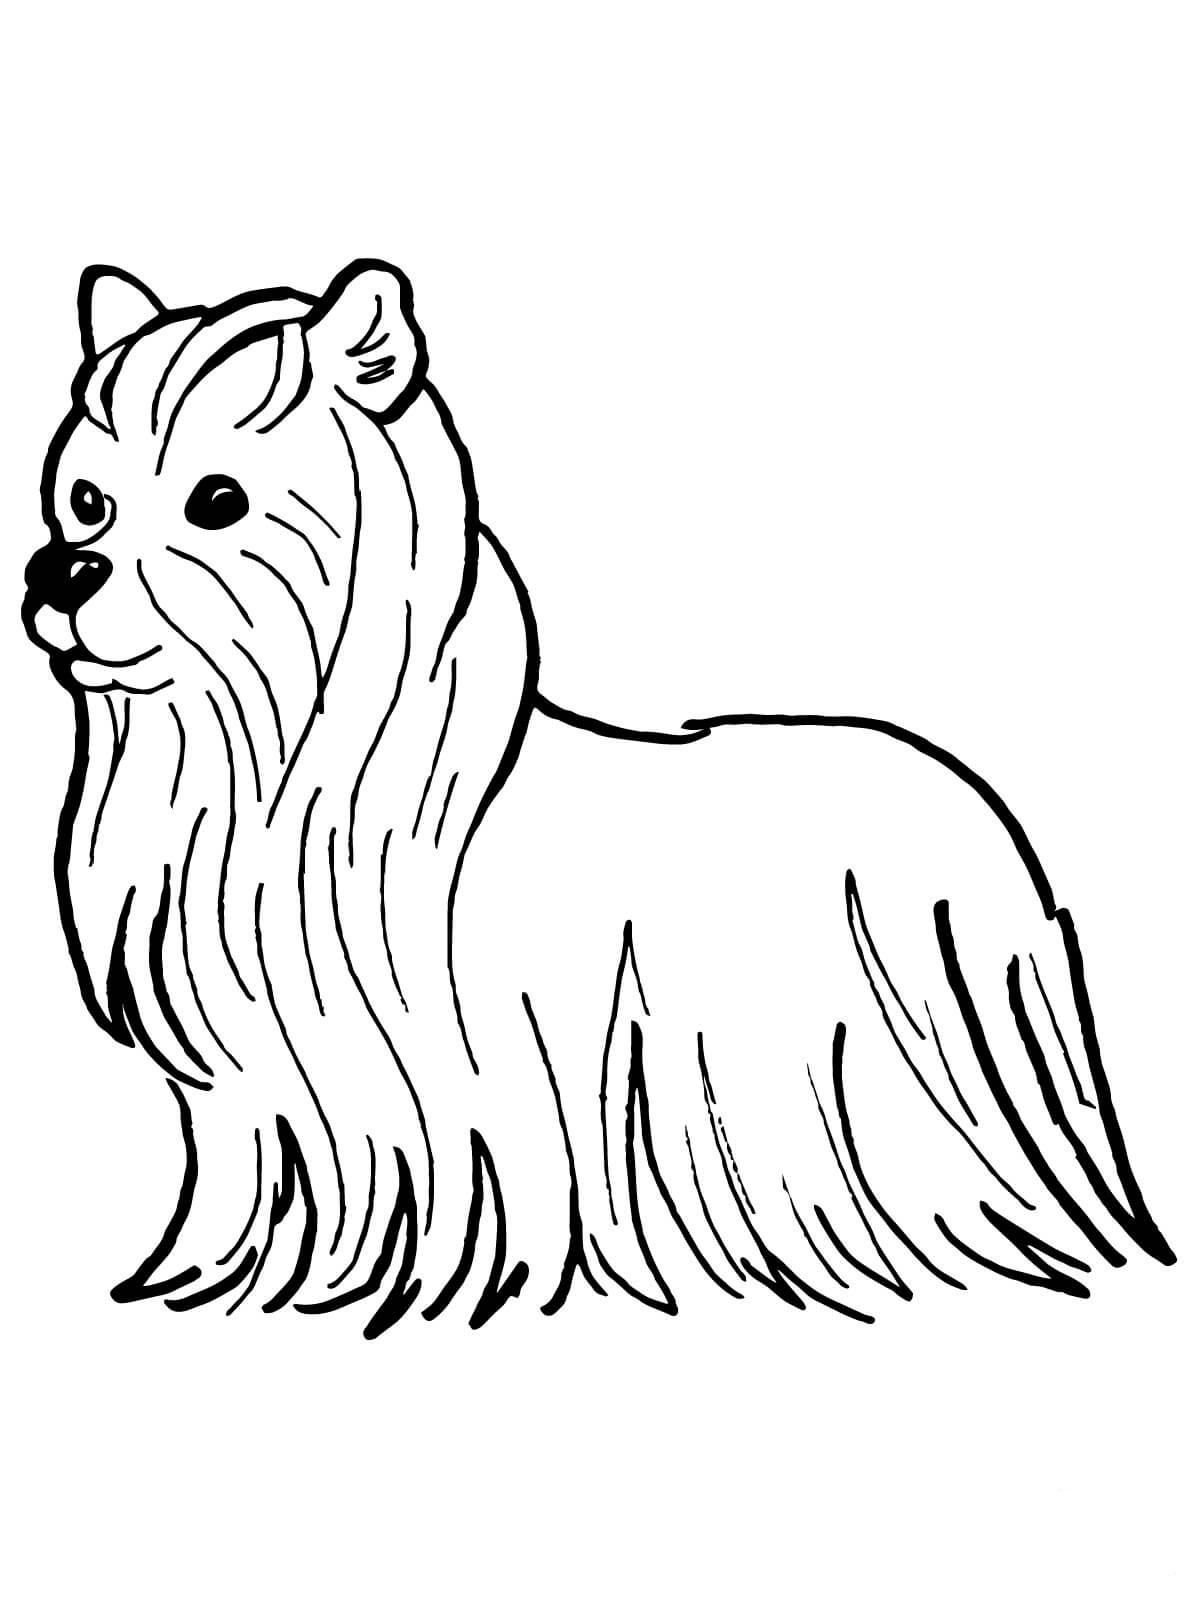 yorkie coloring pages yorkshire coloring pages coloring pages to download and pages coloring yorkie